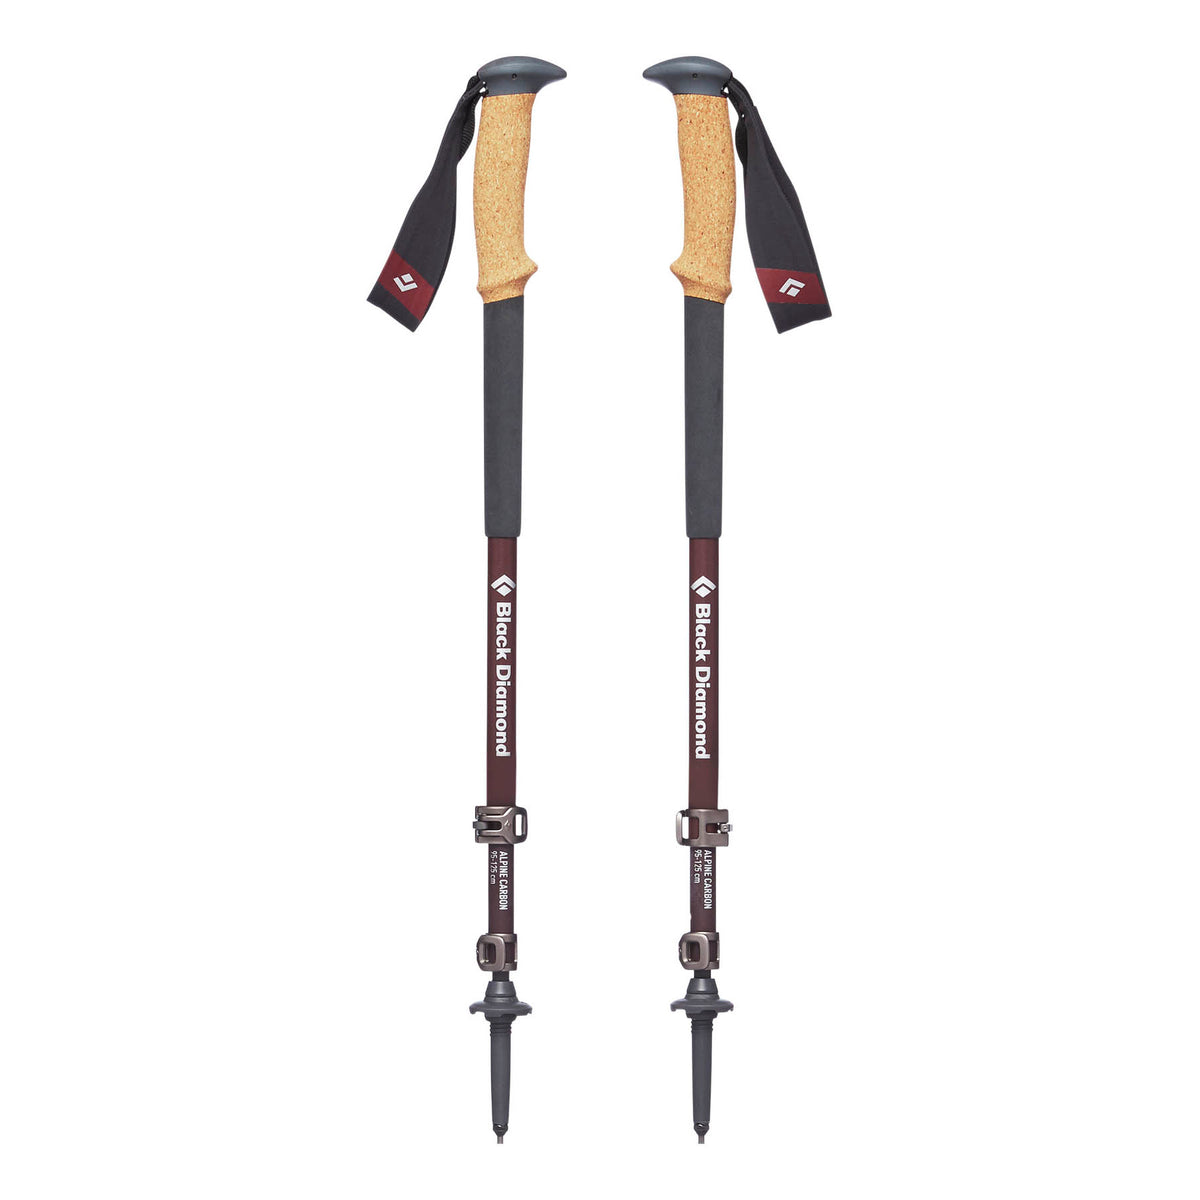 Pair of Black Diamond Alpine Carbon Cork Womens walking poles, shown collapsed down in Grey & Red